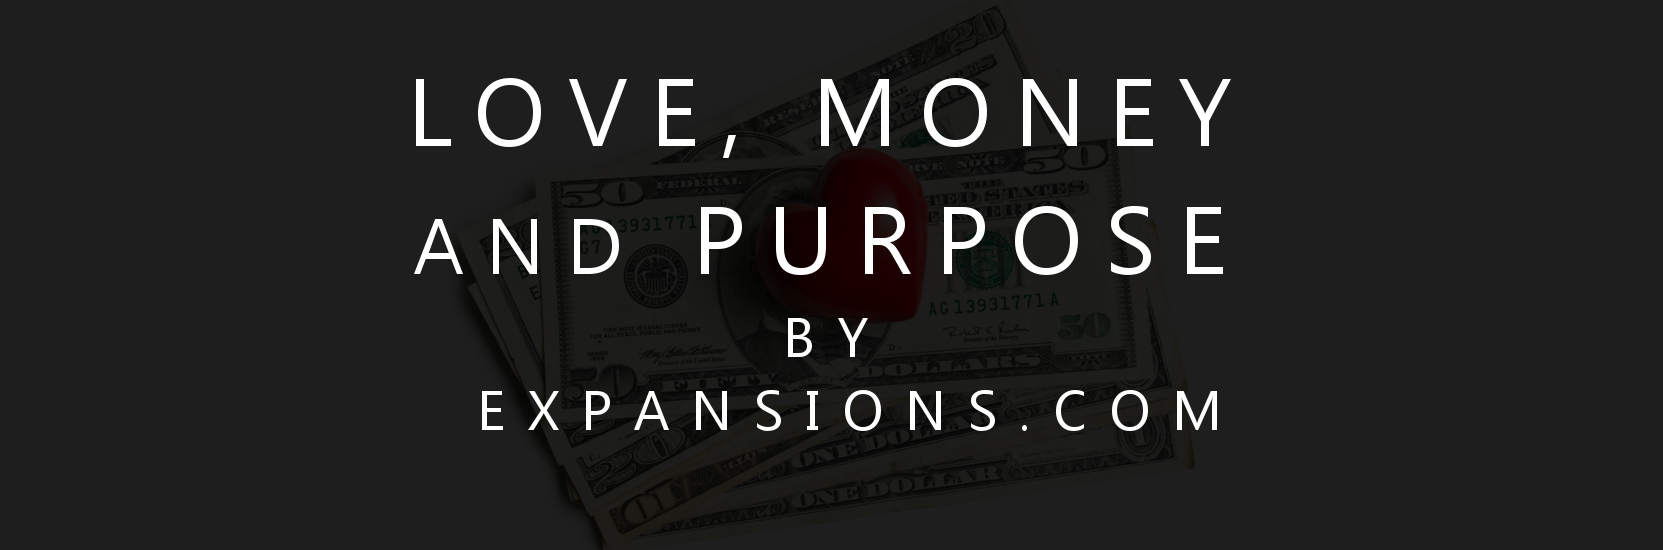 Love, money and purpose by expansions